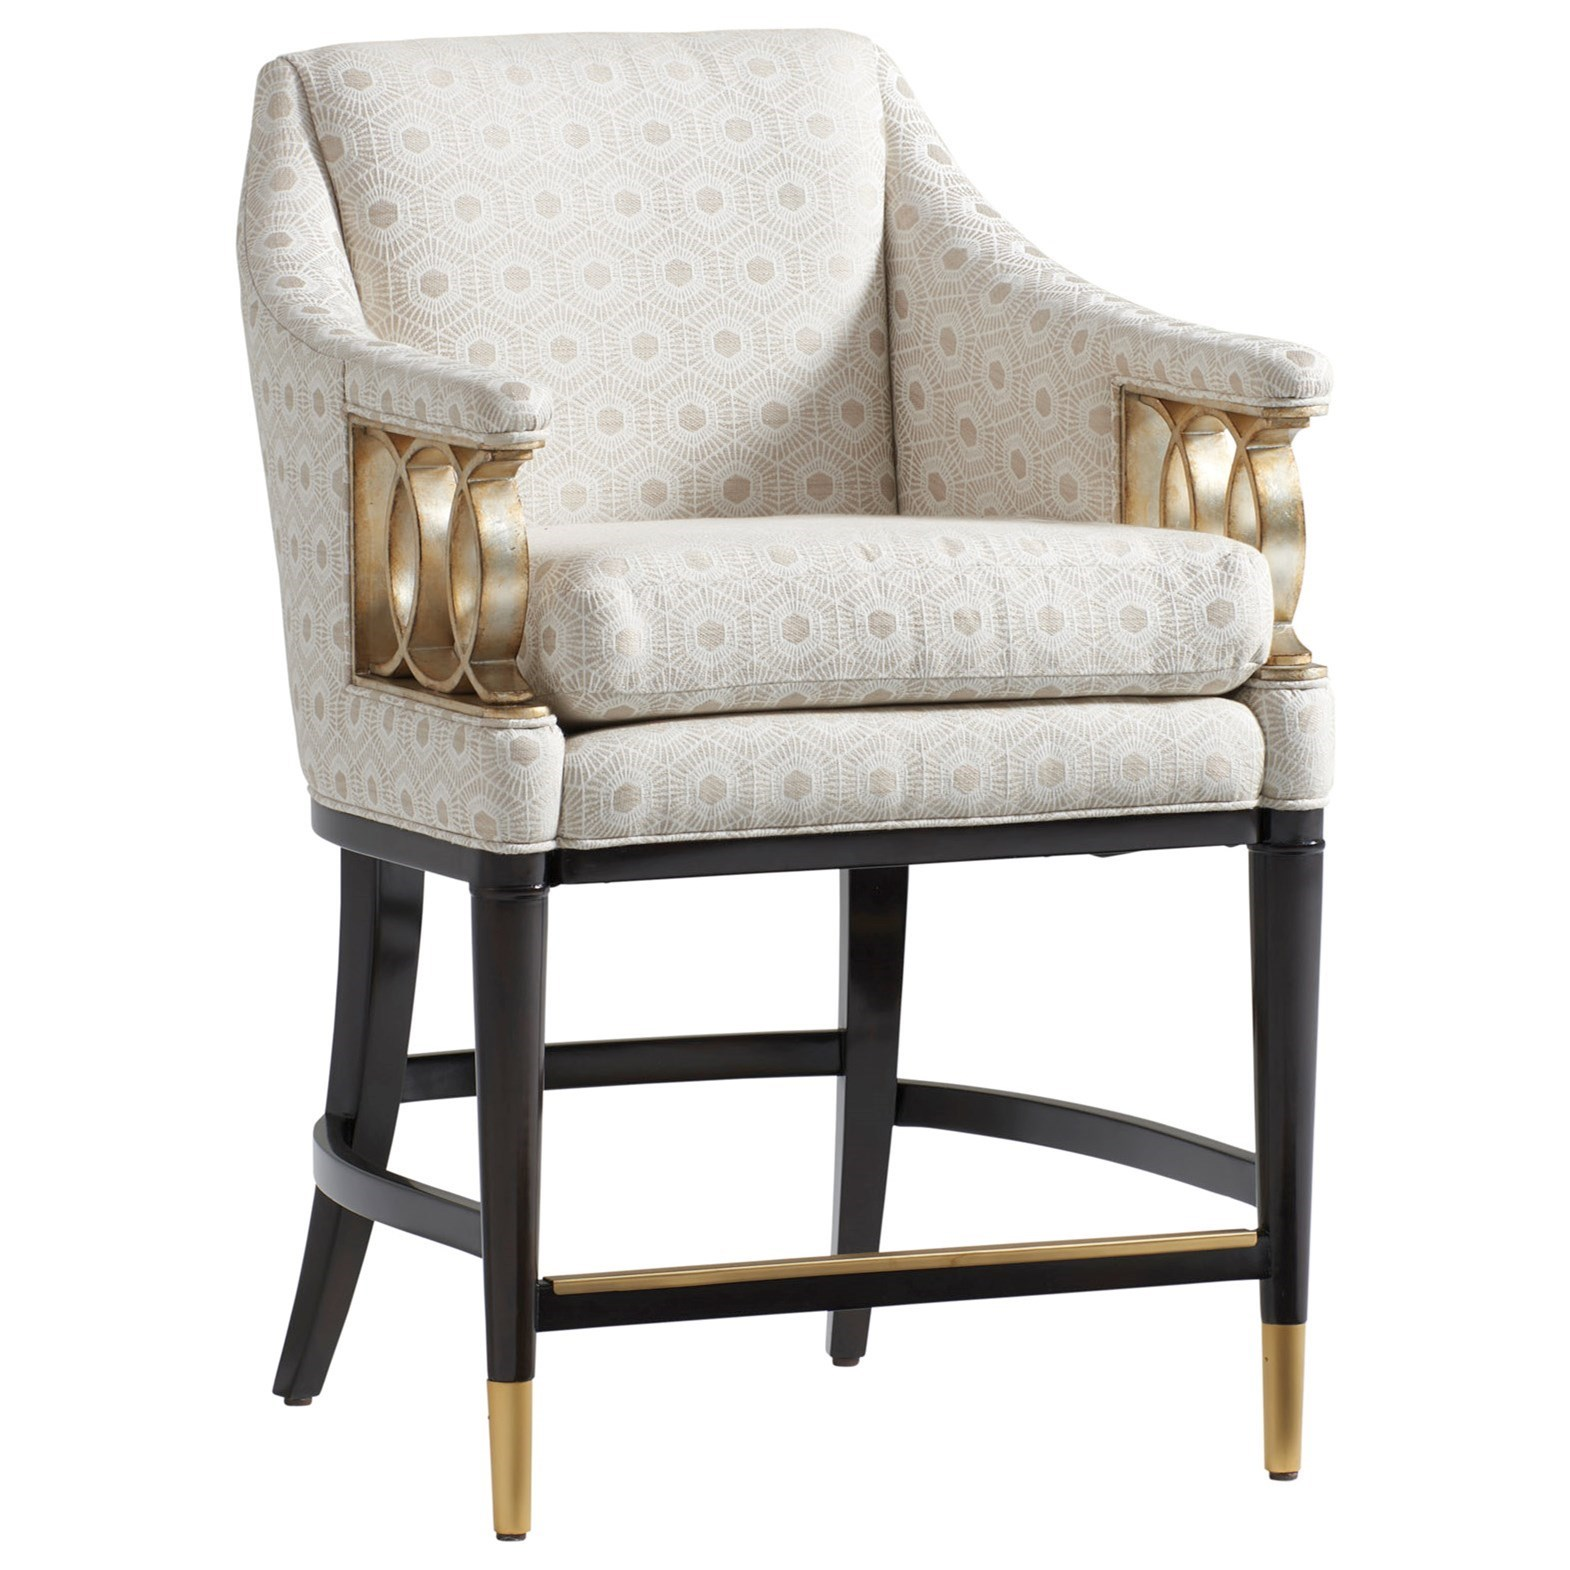 Carlyle Hemsley Upholstered Counter Stool - Custom by Lexington at Baer's Furniture